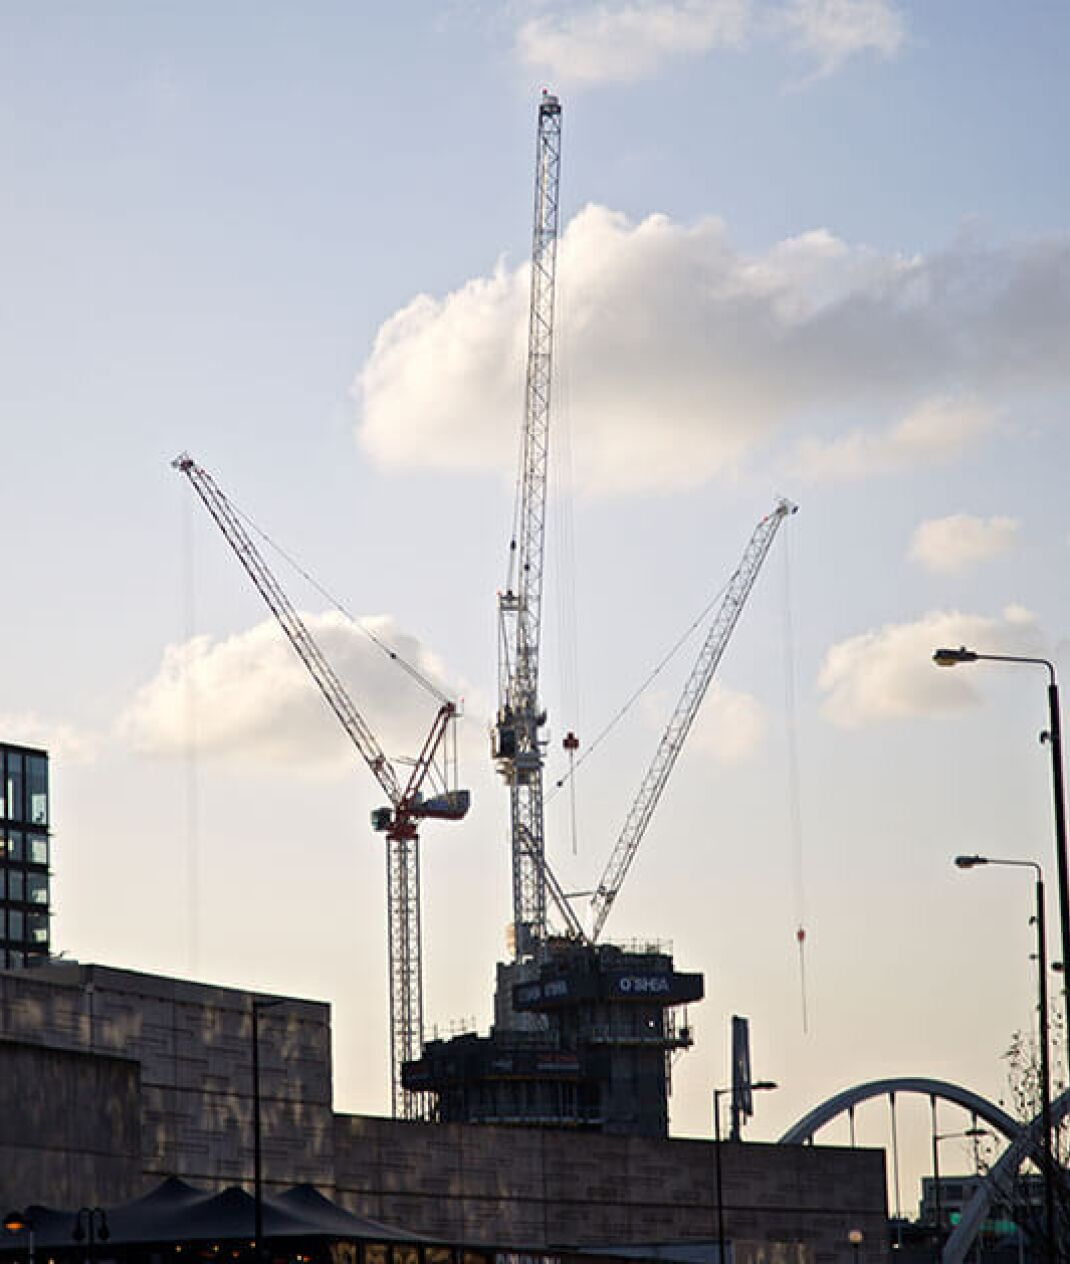 london skyline with three cranes